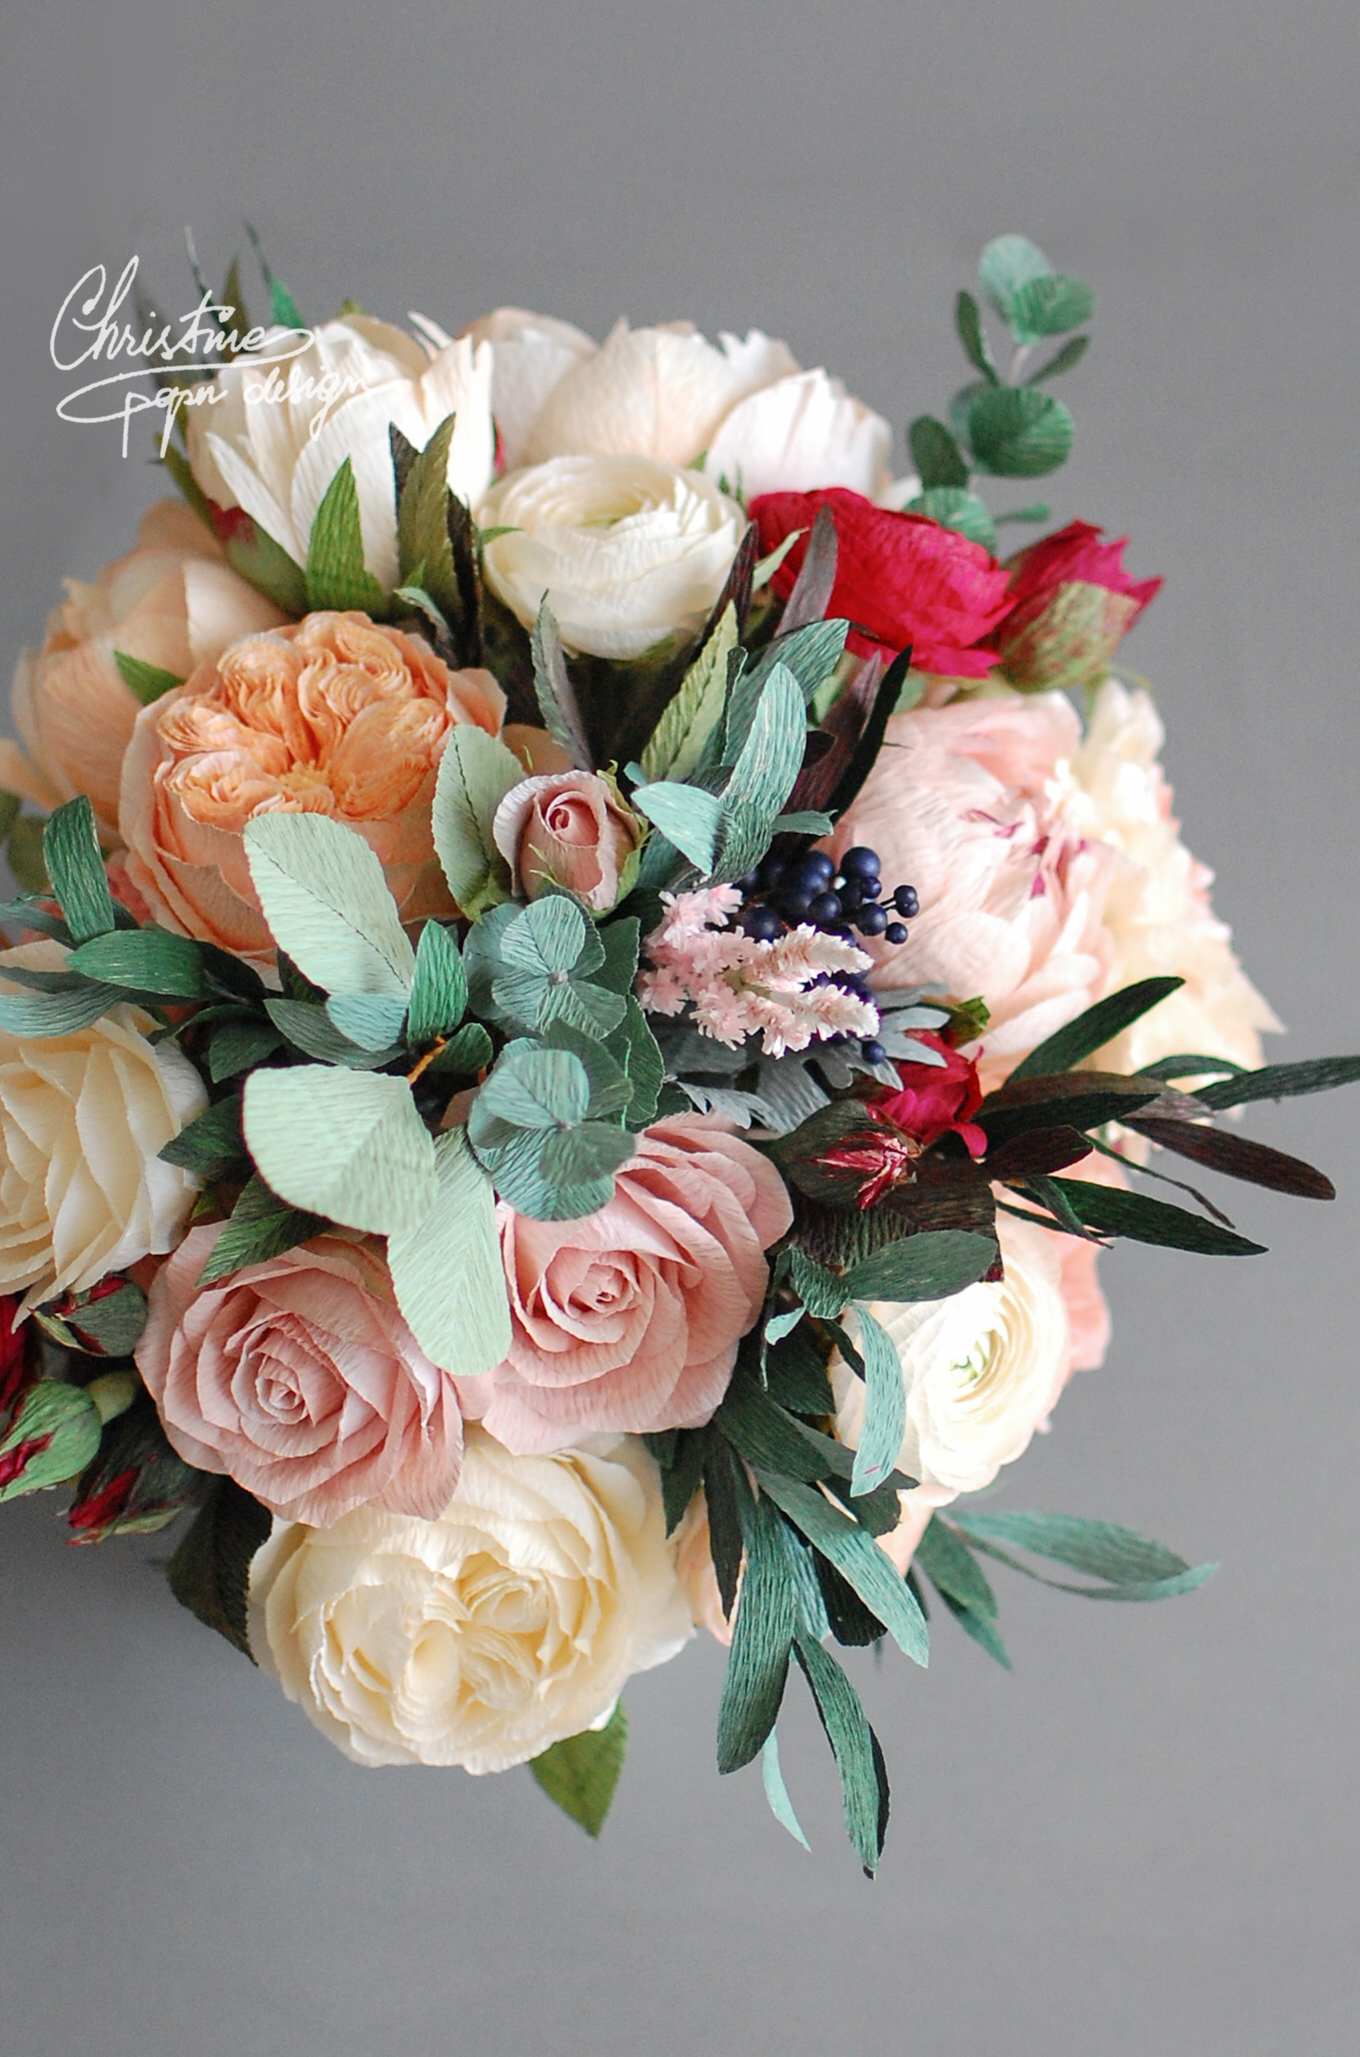 paperflowers bridal bouquet - Christinepaperdesign (2)